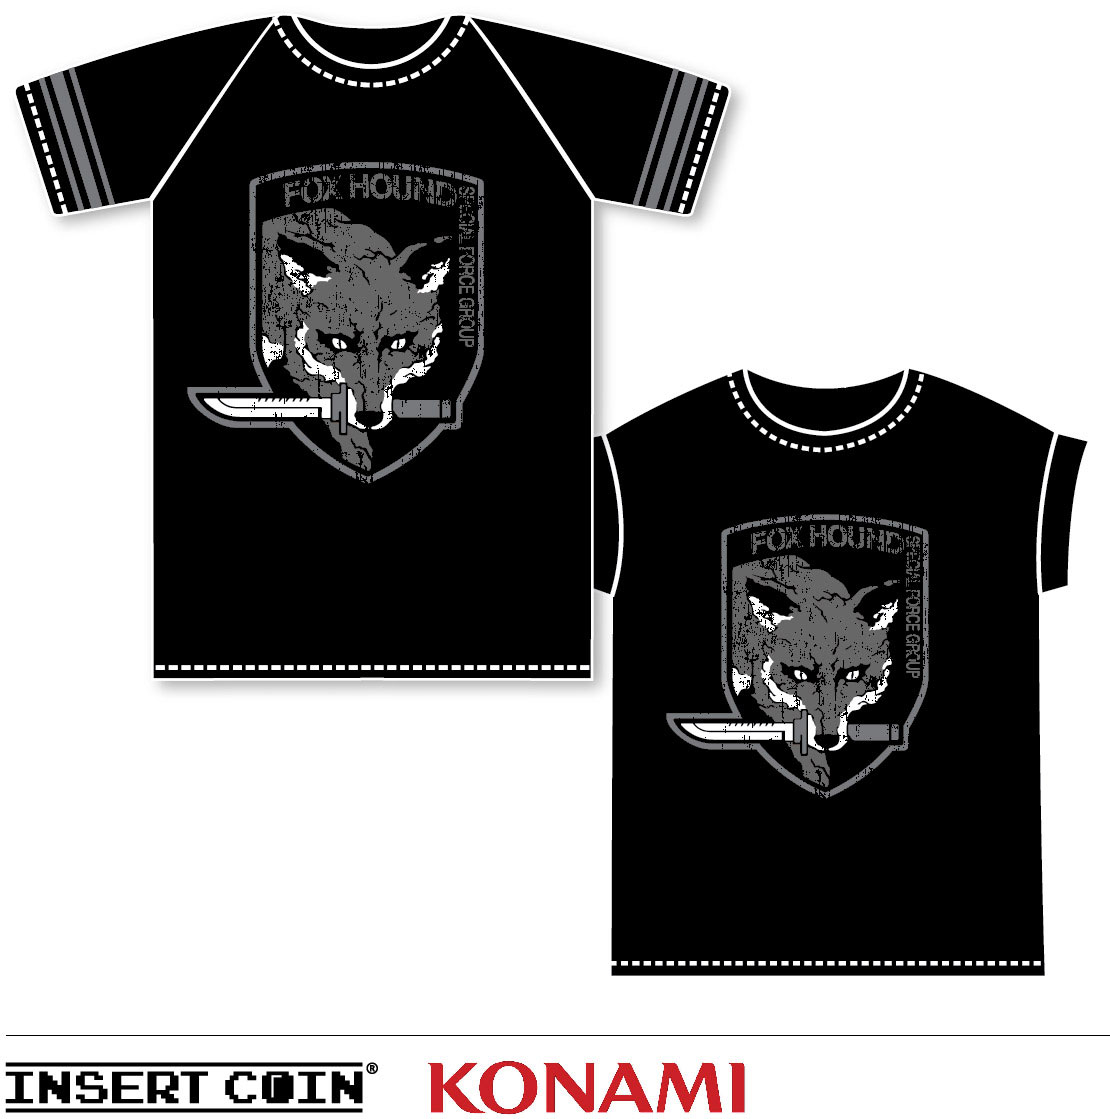 Insert-Coin-FoxHound-Tees